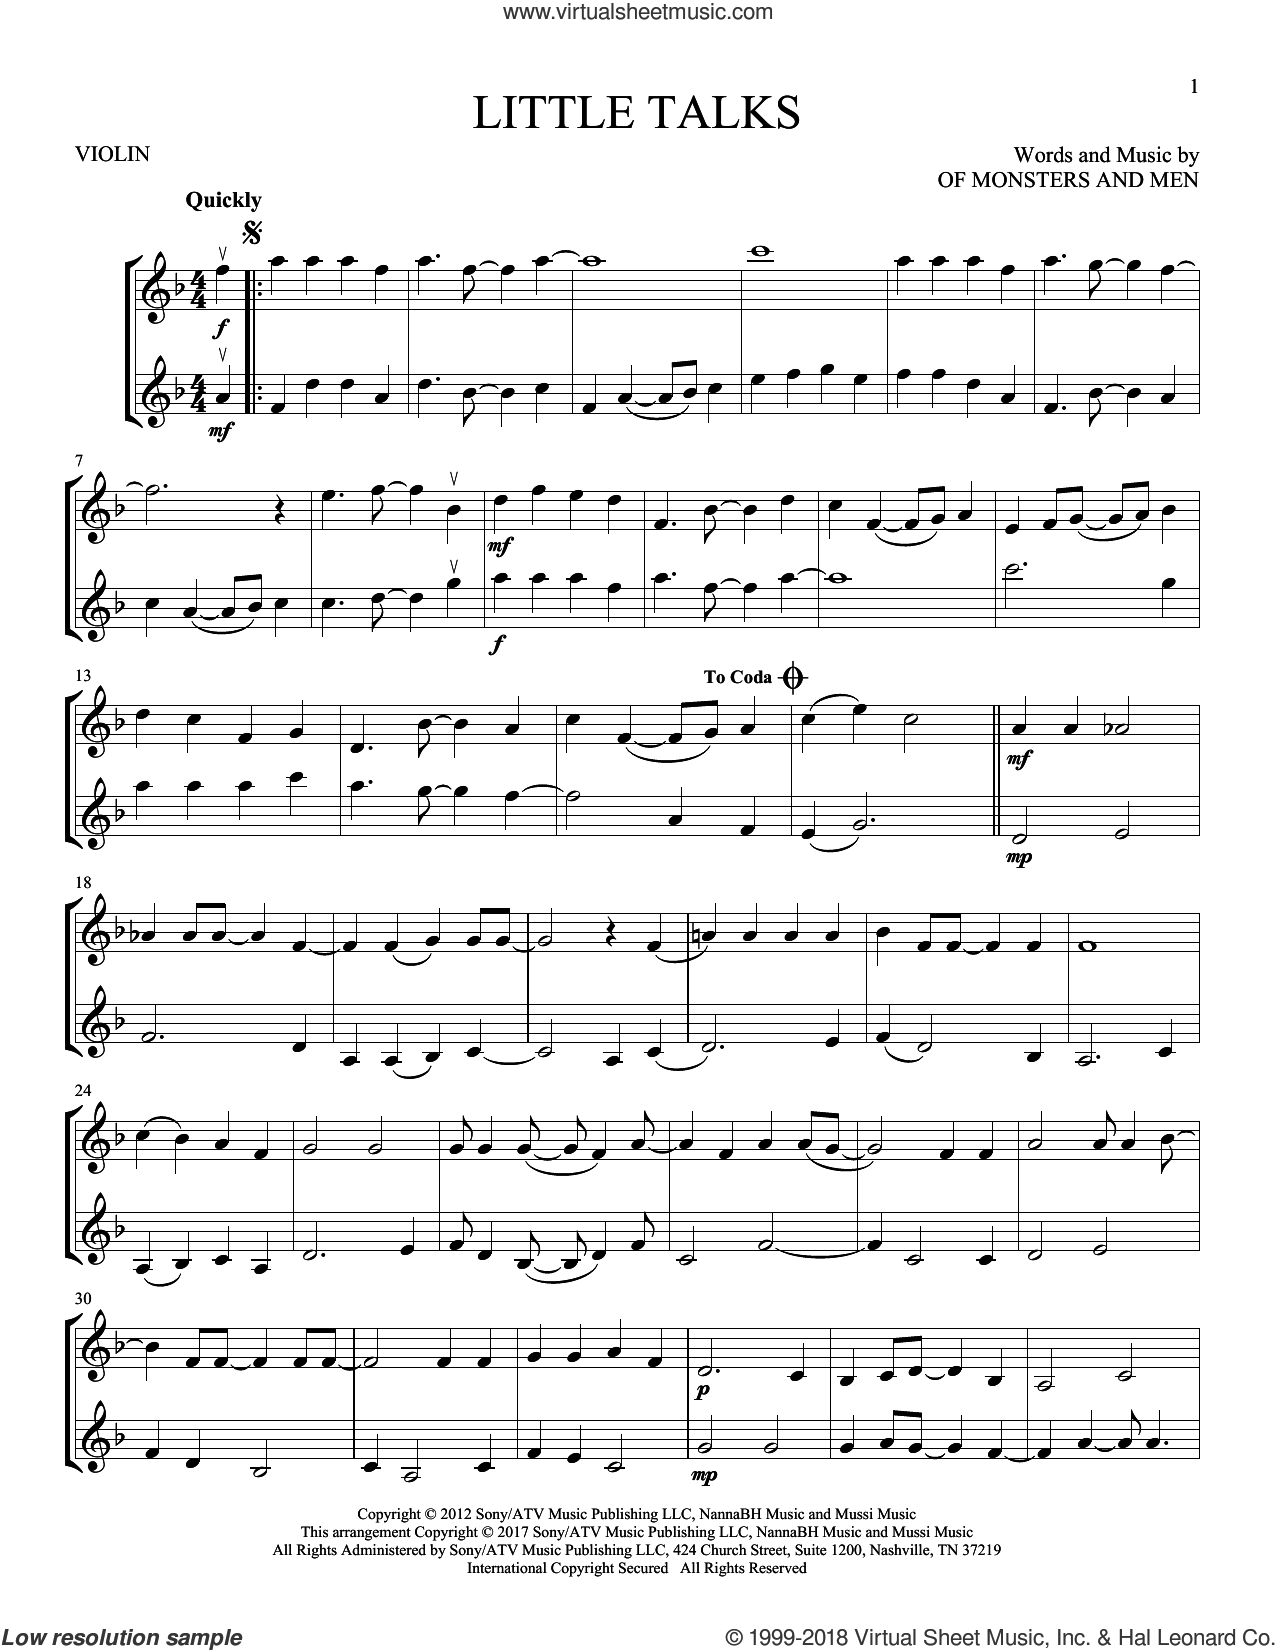 Little Talks sheet music for two violins (duets, violin duets) by Of Monsters And Men, intermediate skill level